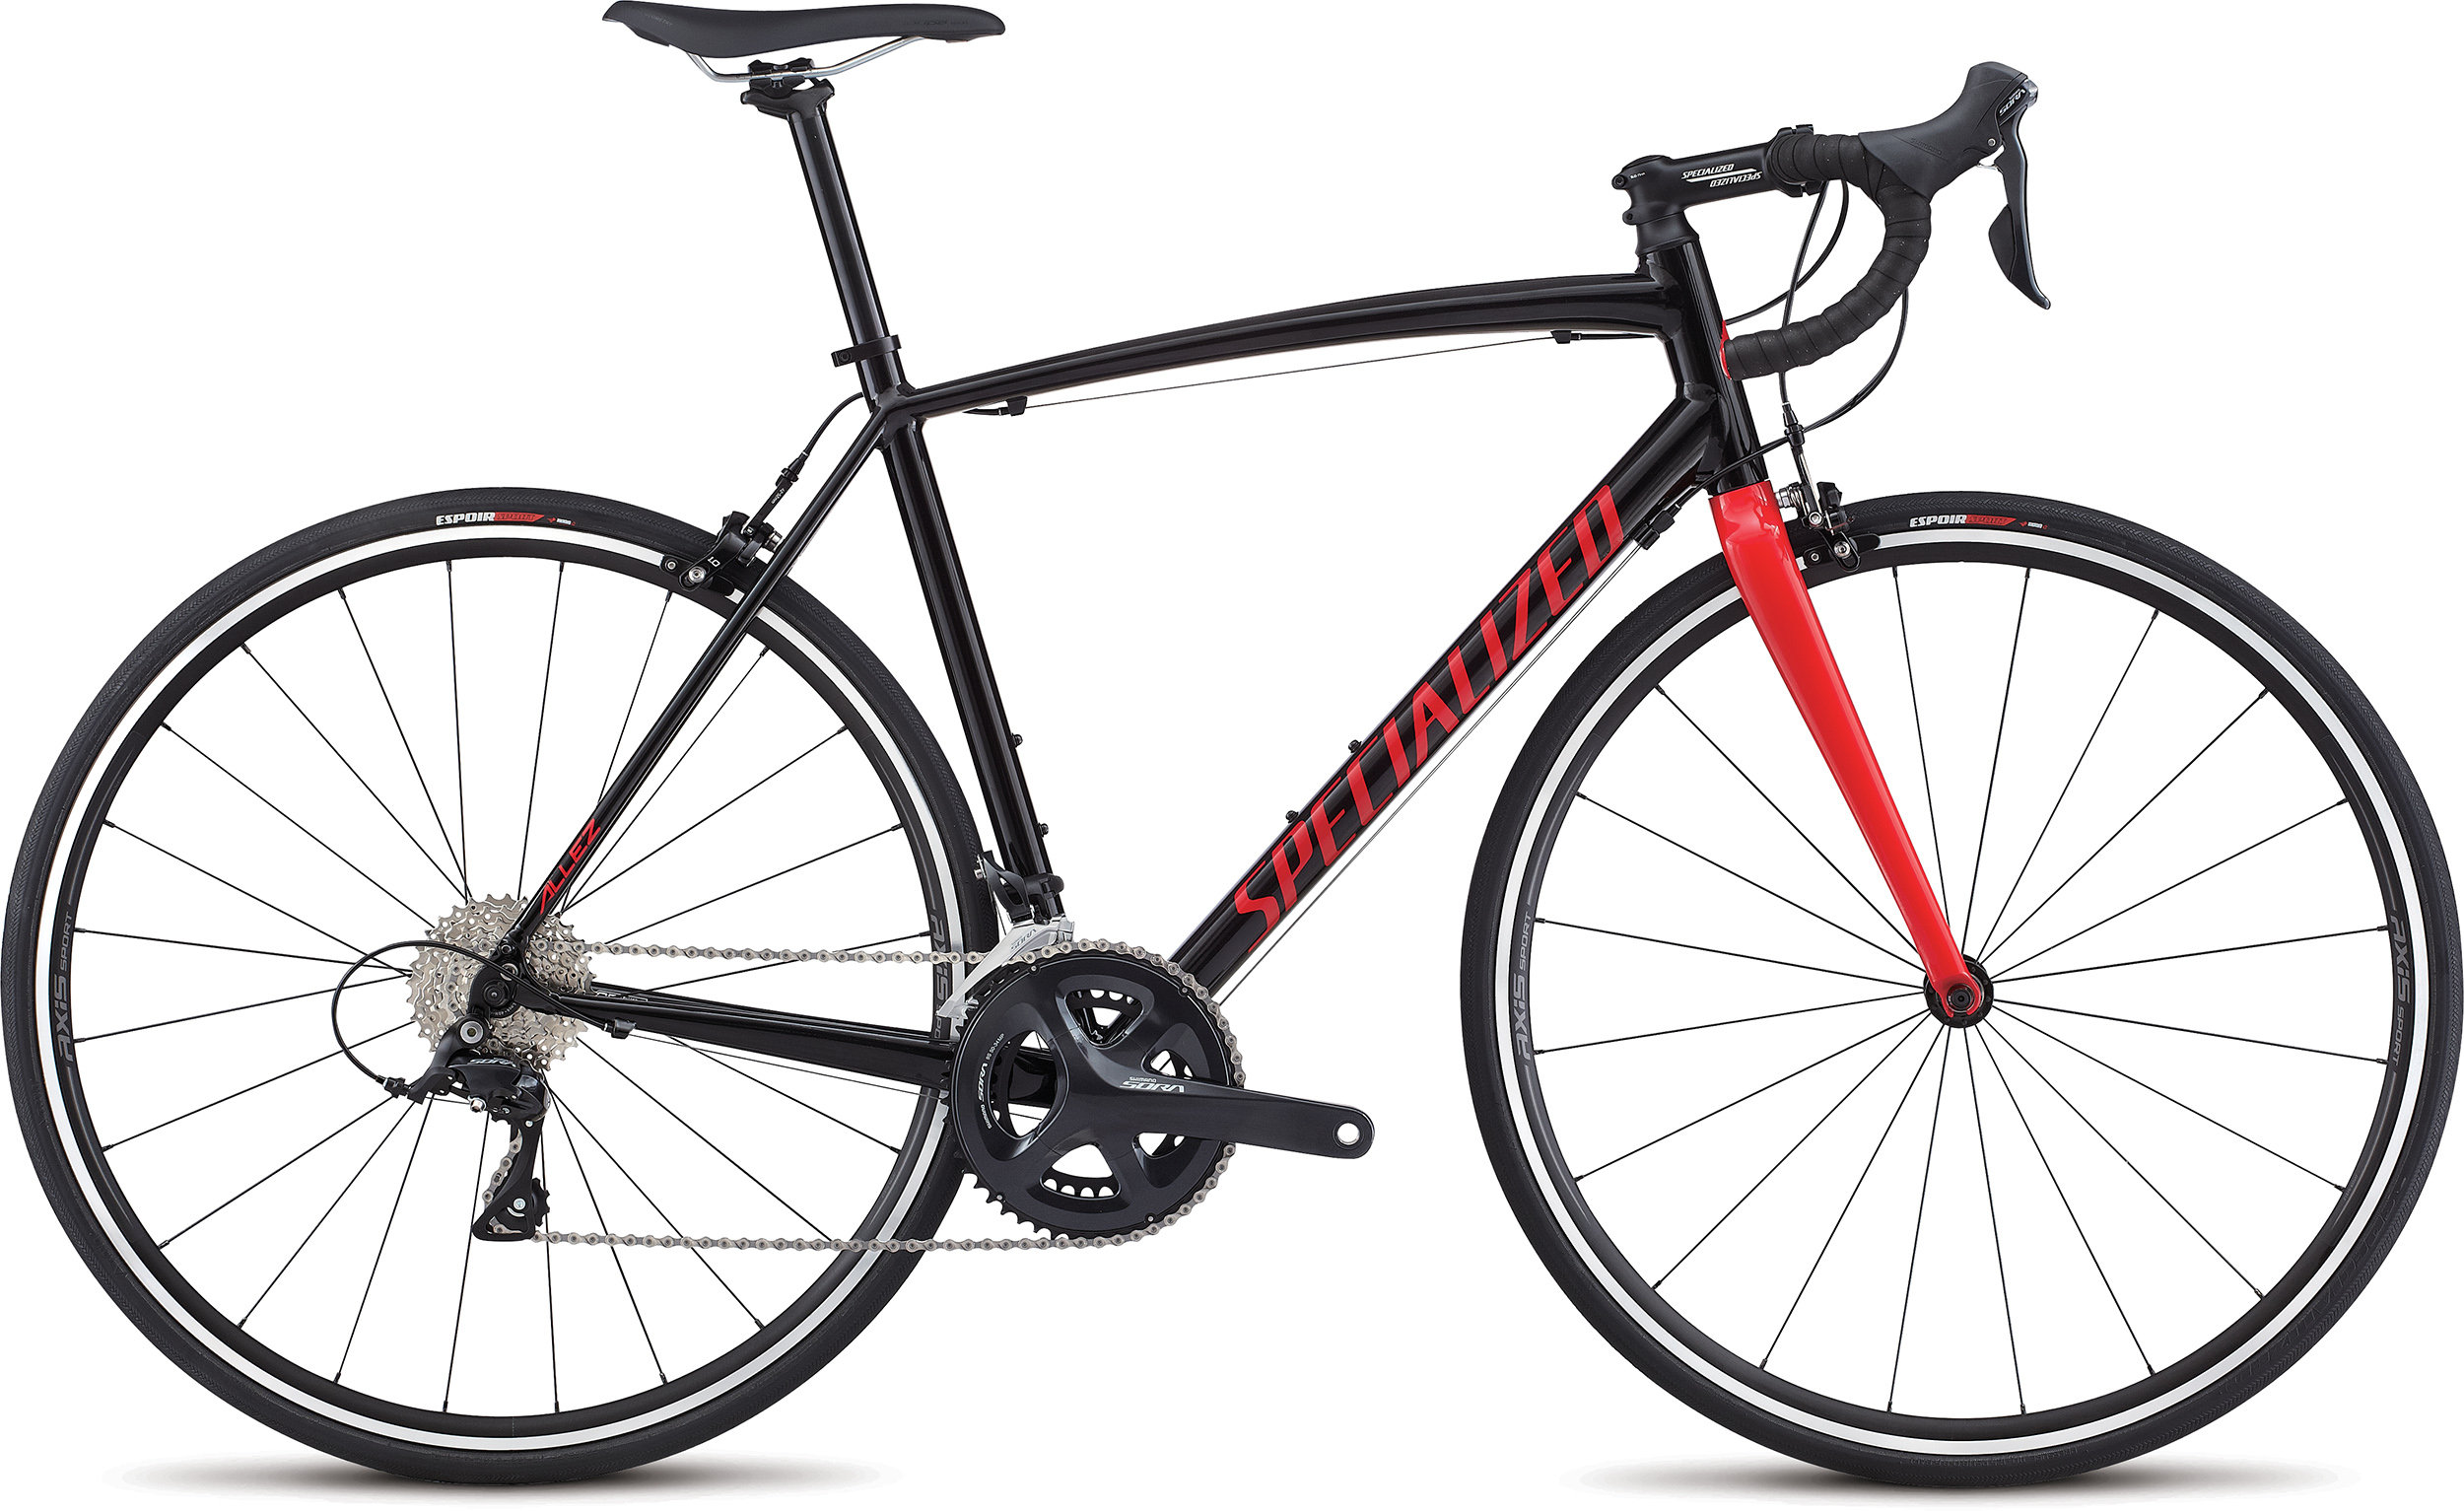 SPECIALIZED ALLEZ E5 SPORT TARBLK/FLORED/WHT 49 - Bike Maniac